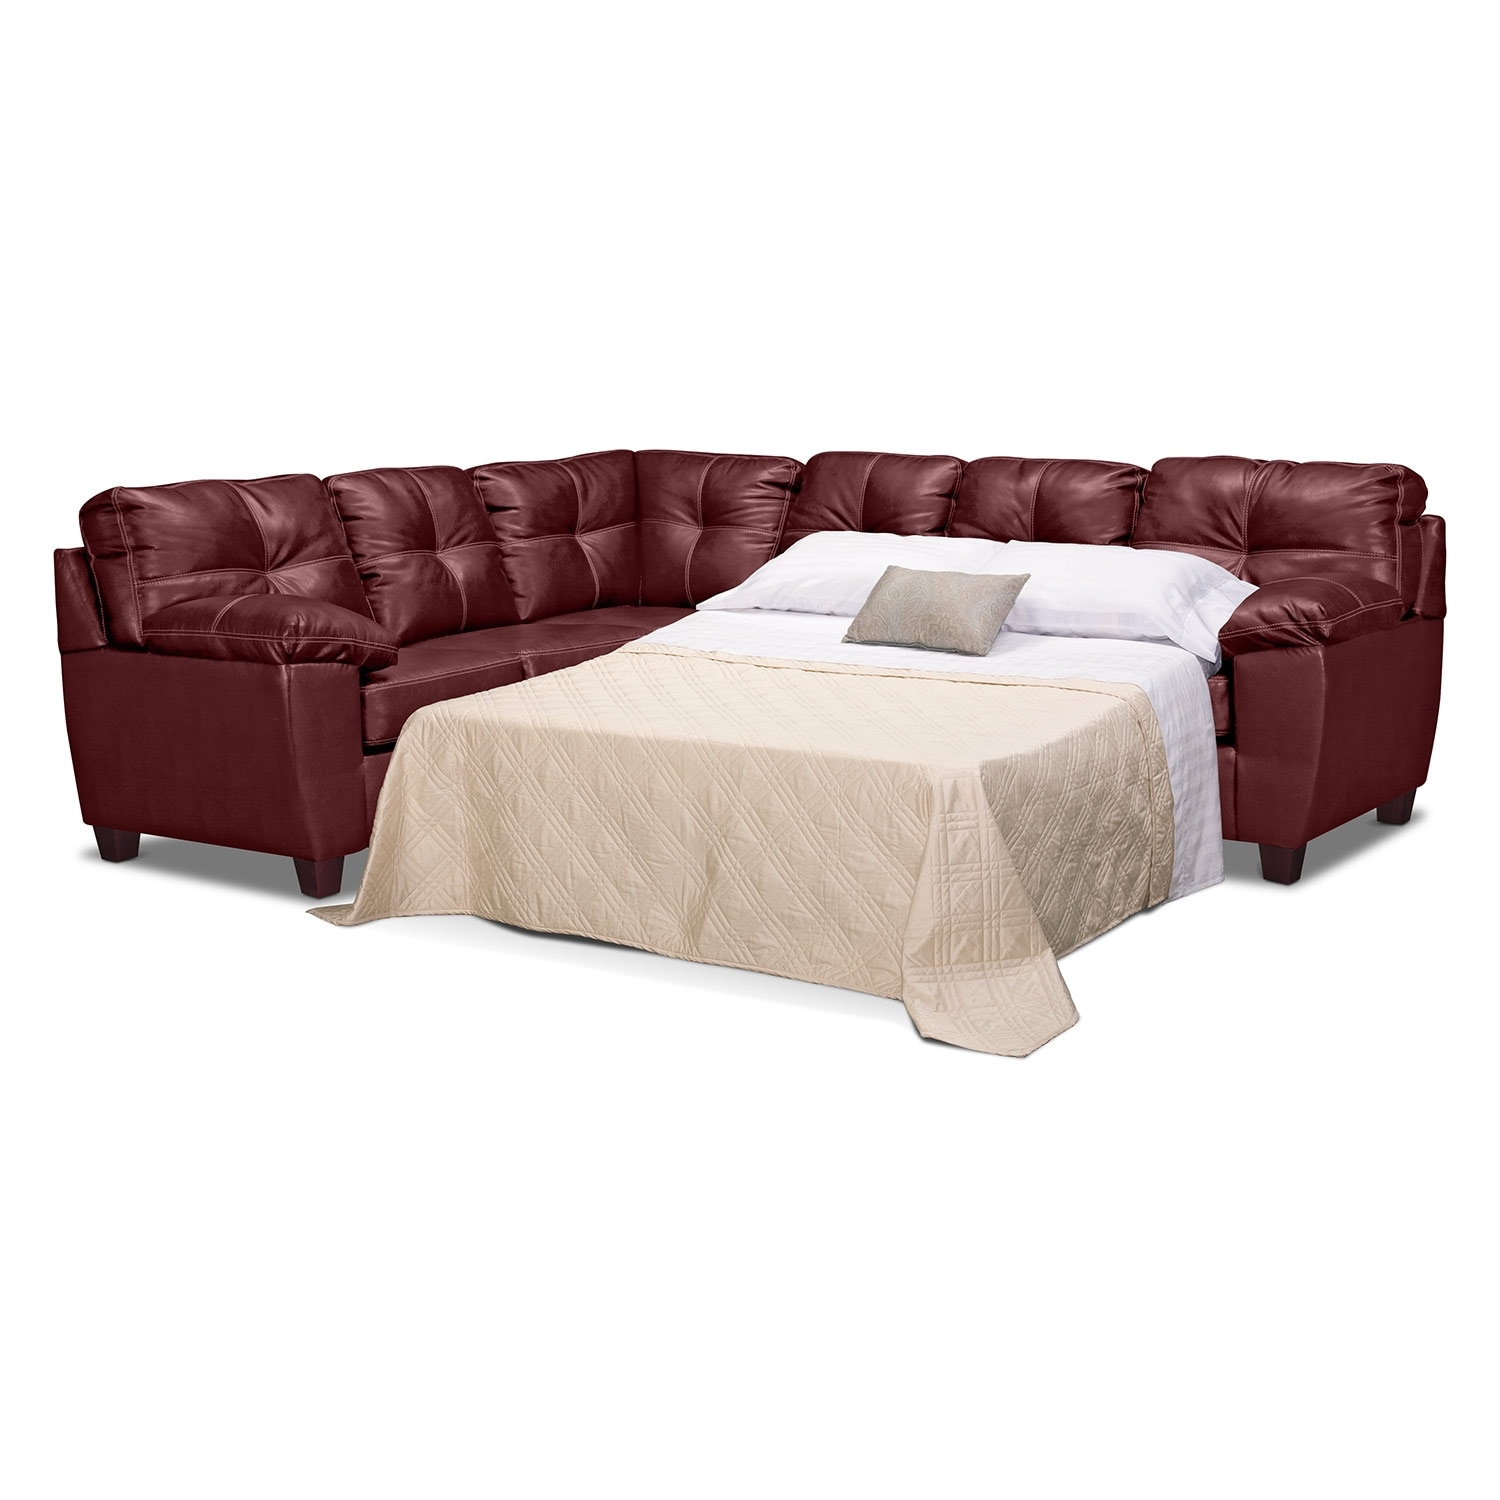 Rialto ii leather 2 pc sleeper sectional value city Sleeper sofa sectional